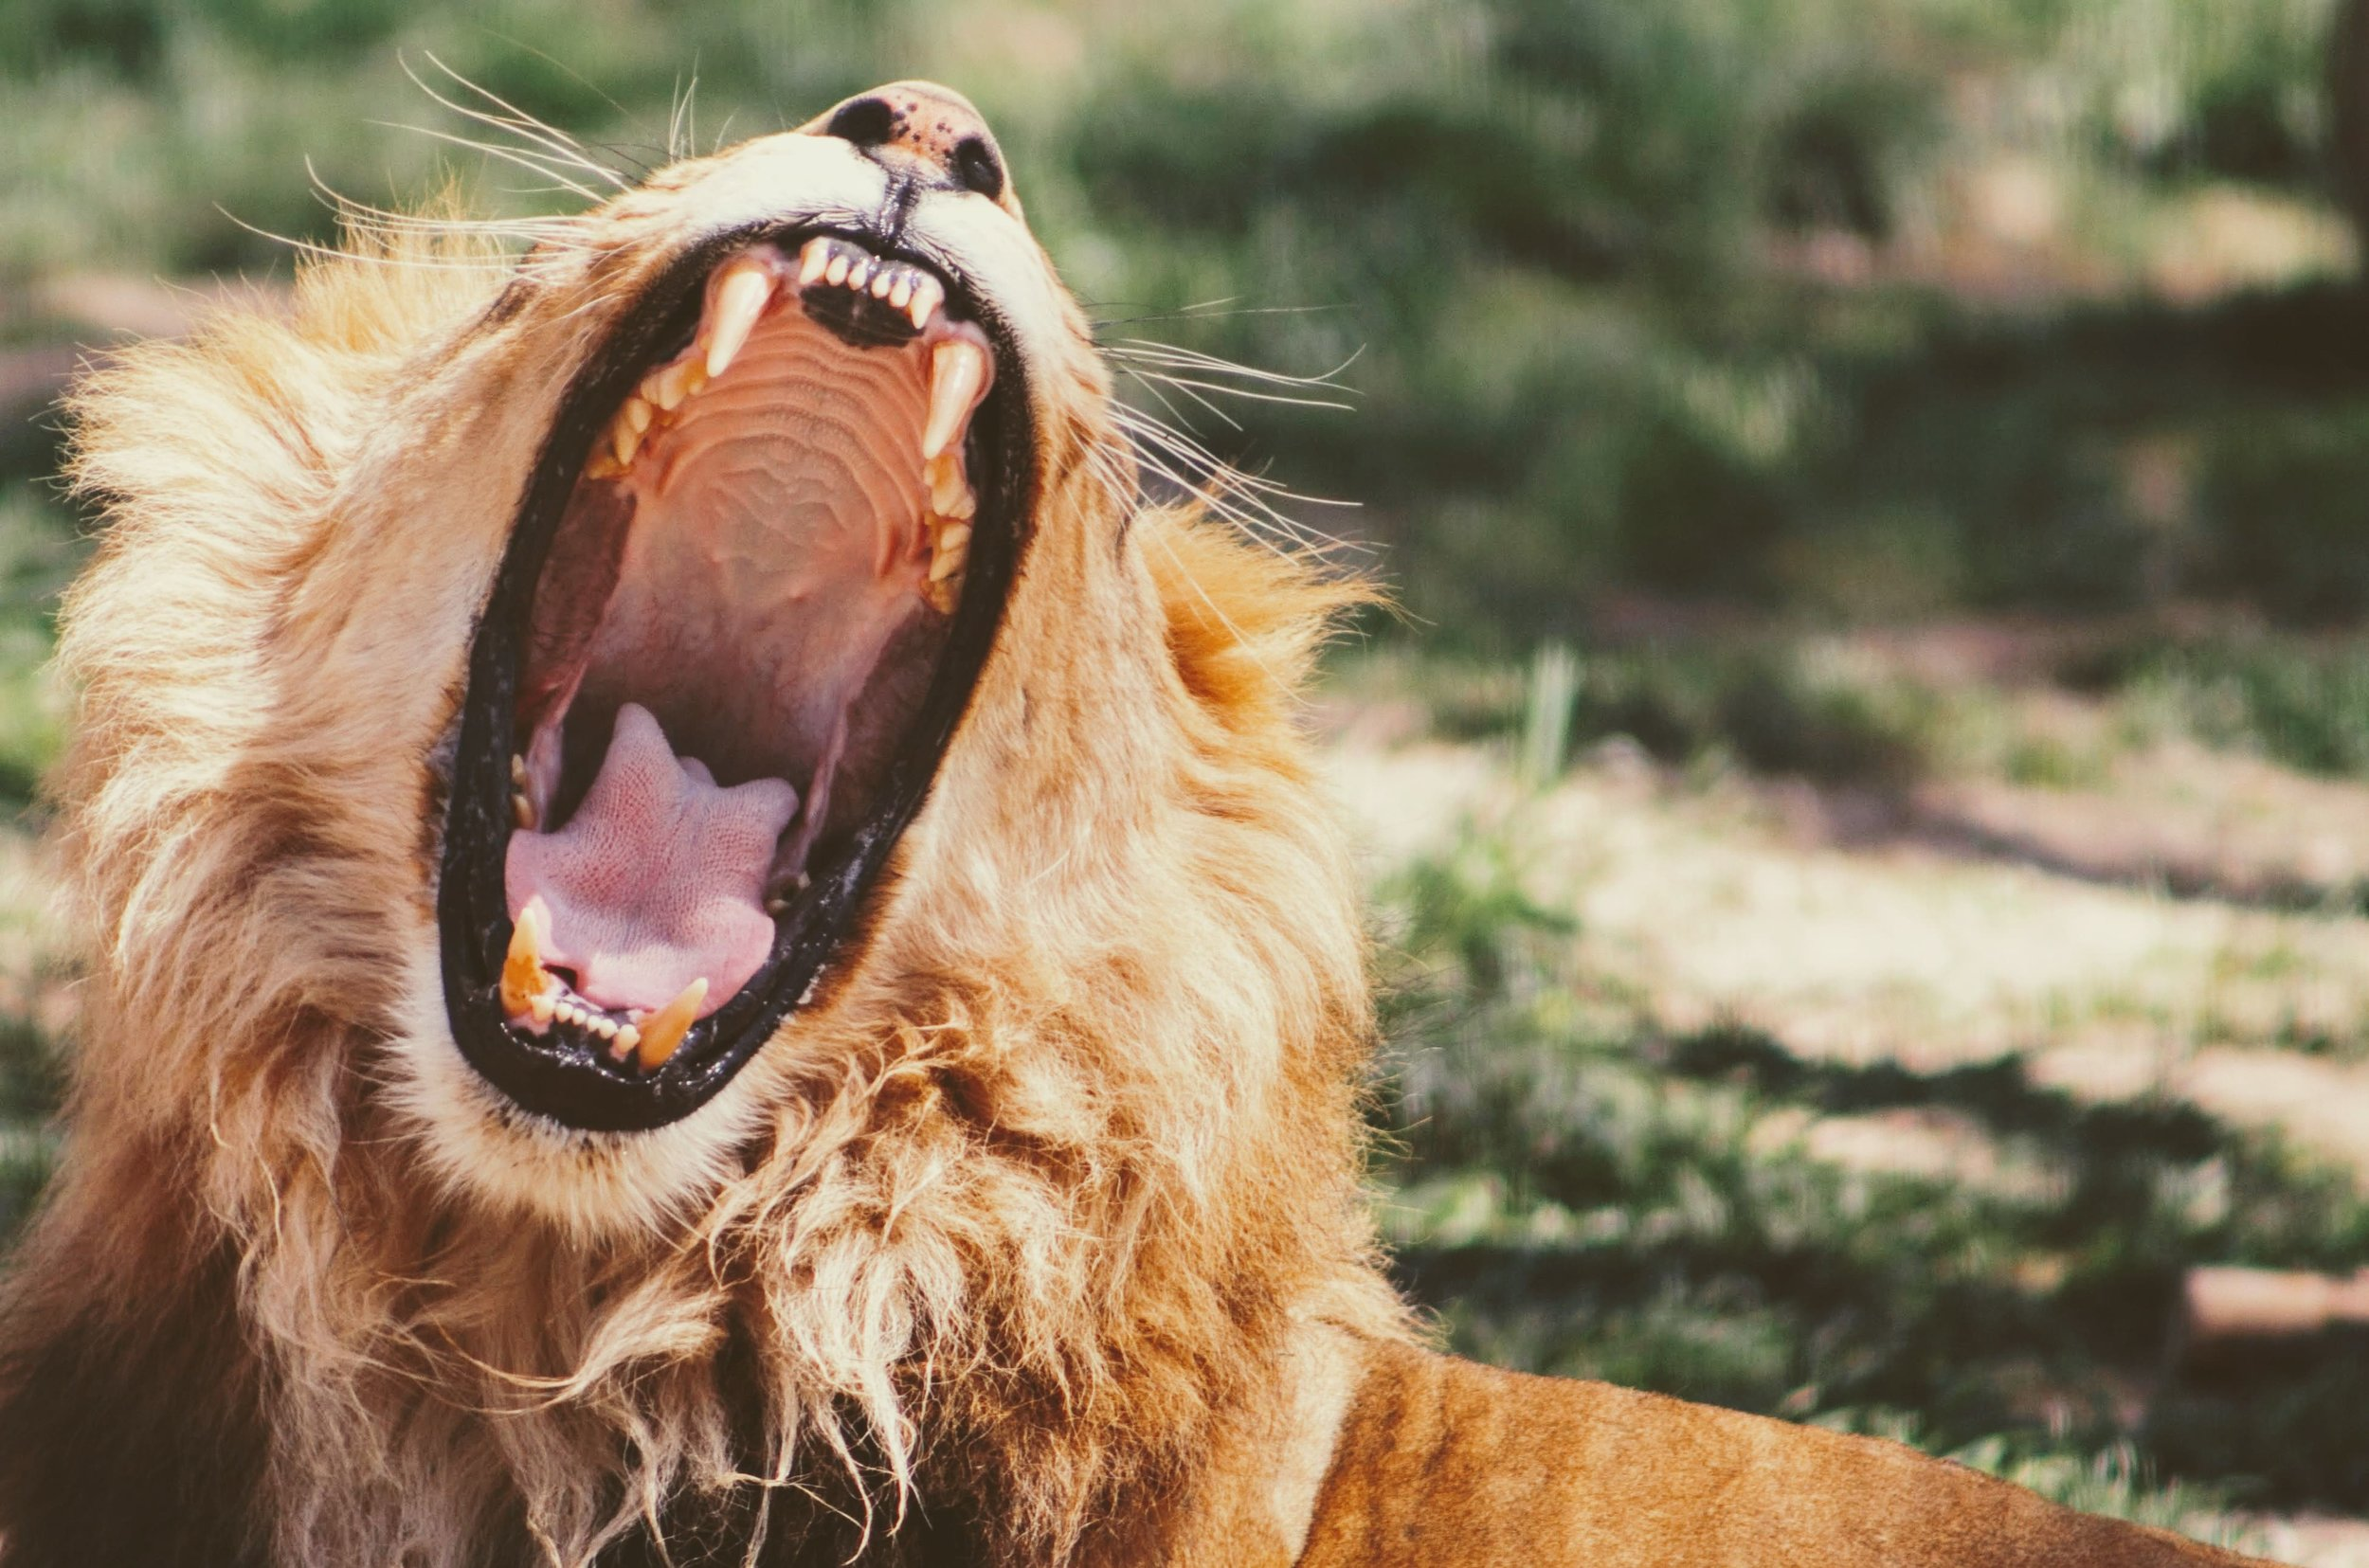 a lion roars exposing huge teeth - our stress response has remained the same since caveman days